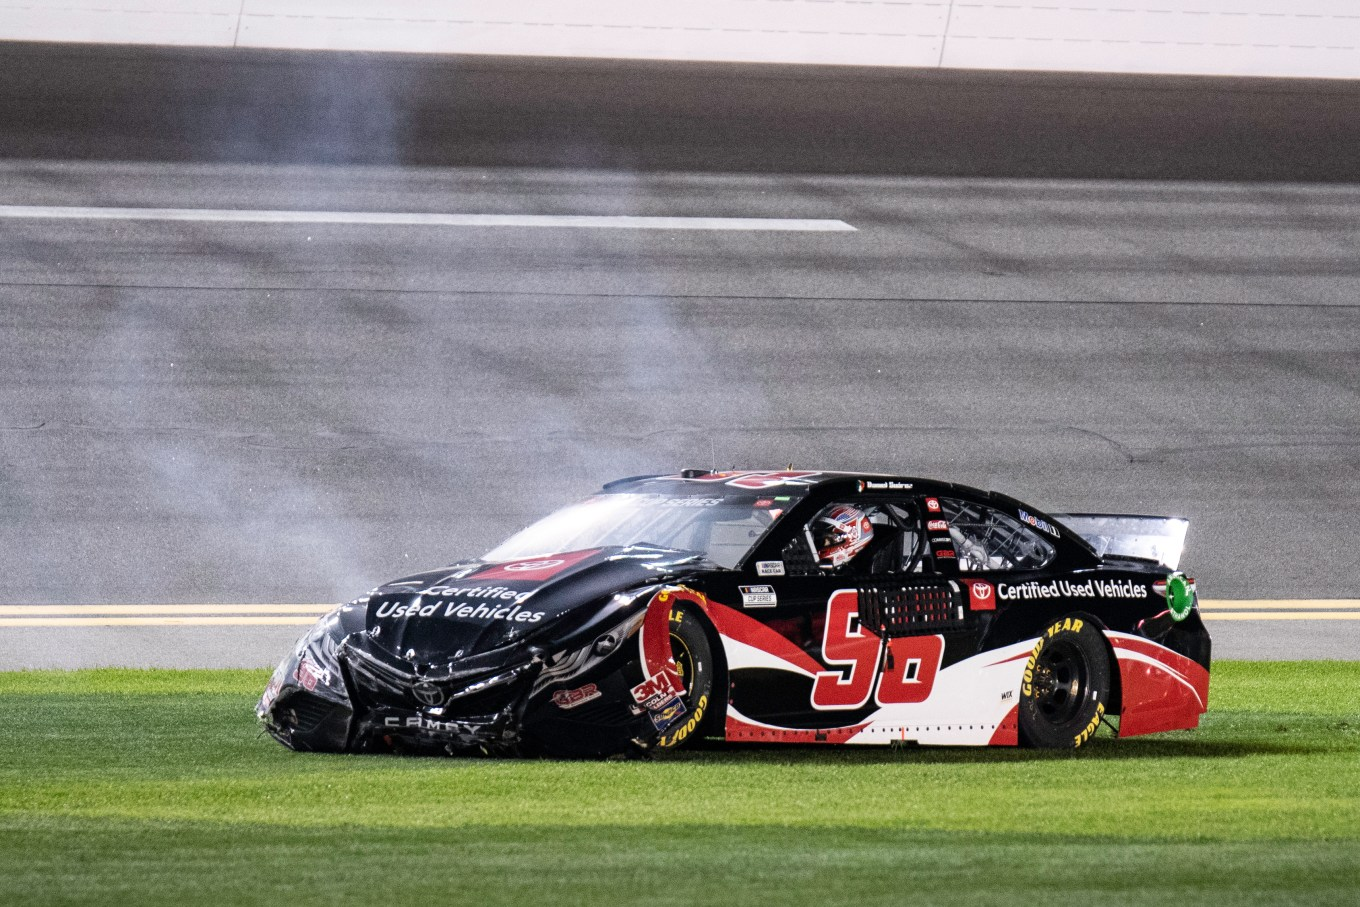 Daniel Suarez 96 crash Daytona 2020